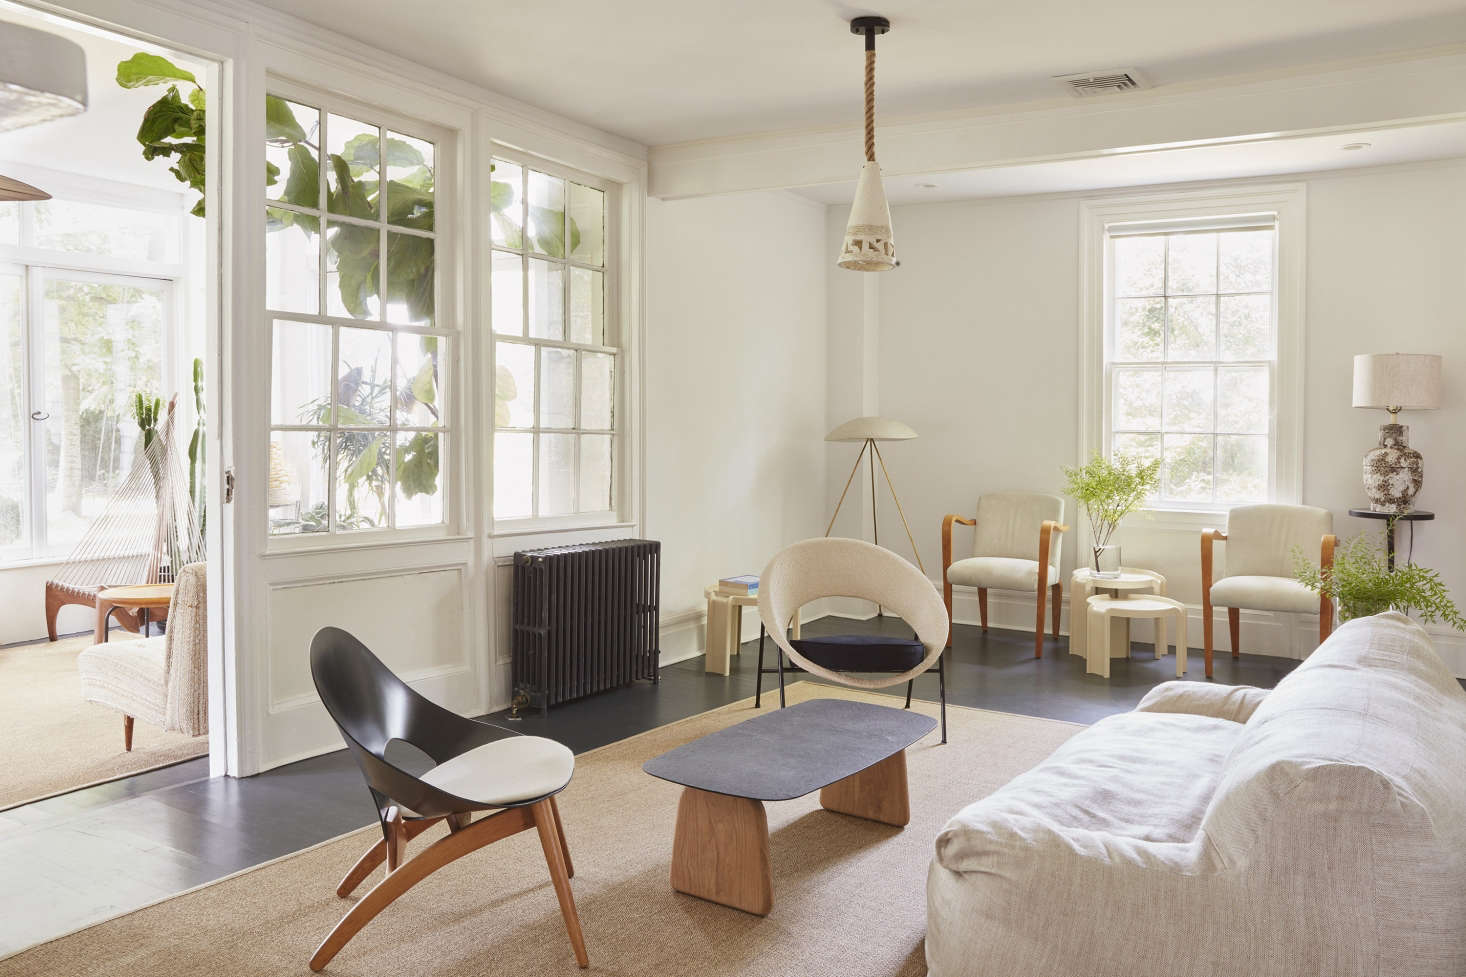 The Wood Floors Are Painted Dark Navy And Covered With Neutral Area Rugs To Withstand